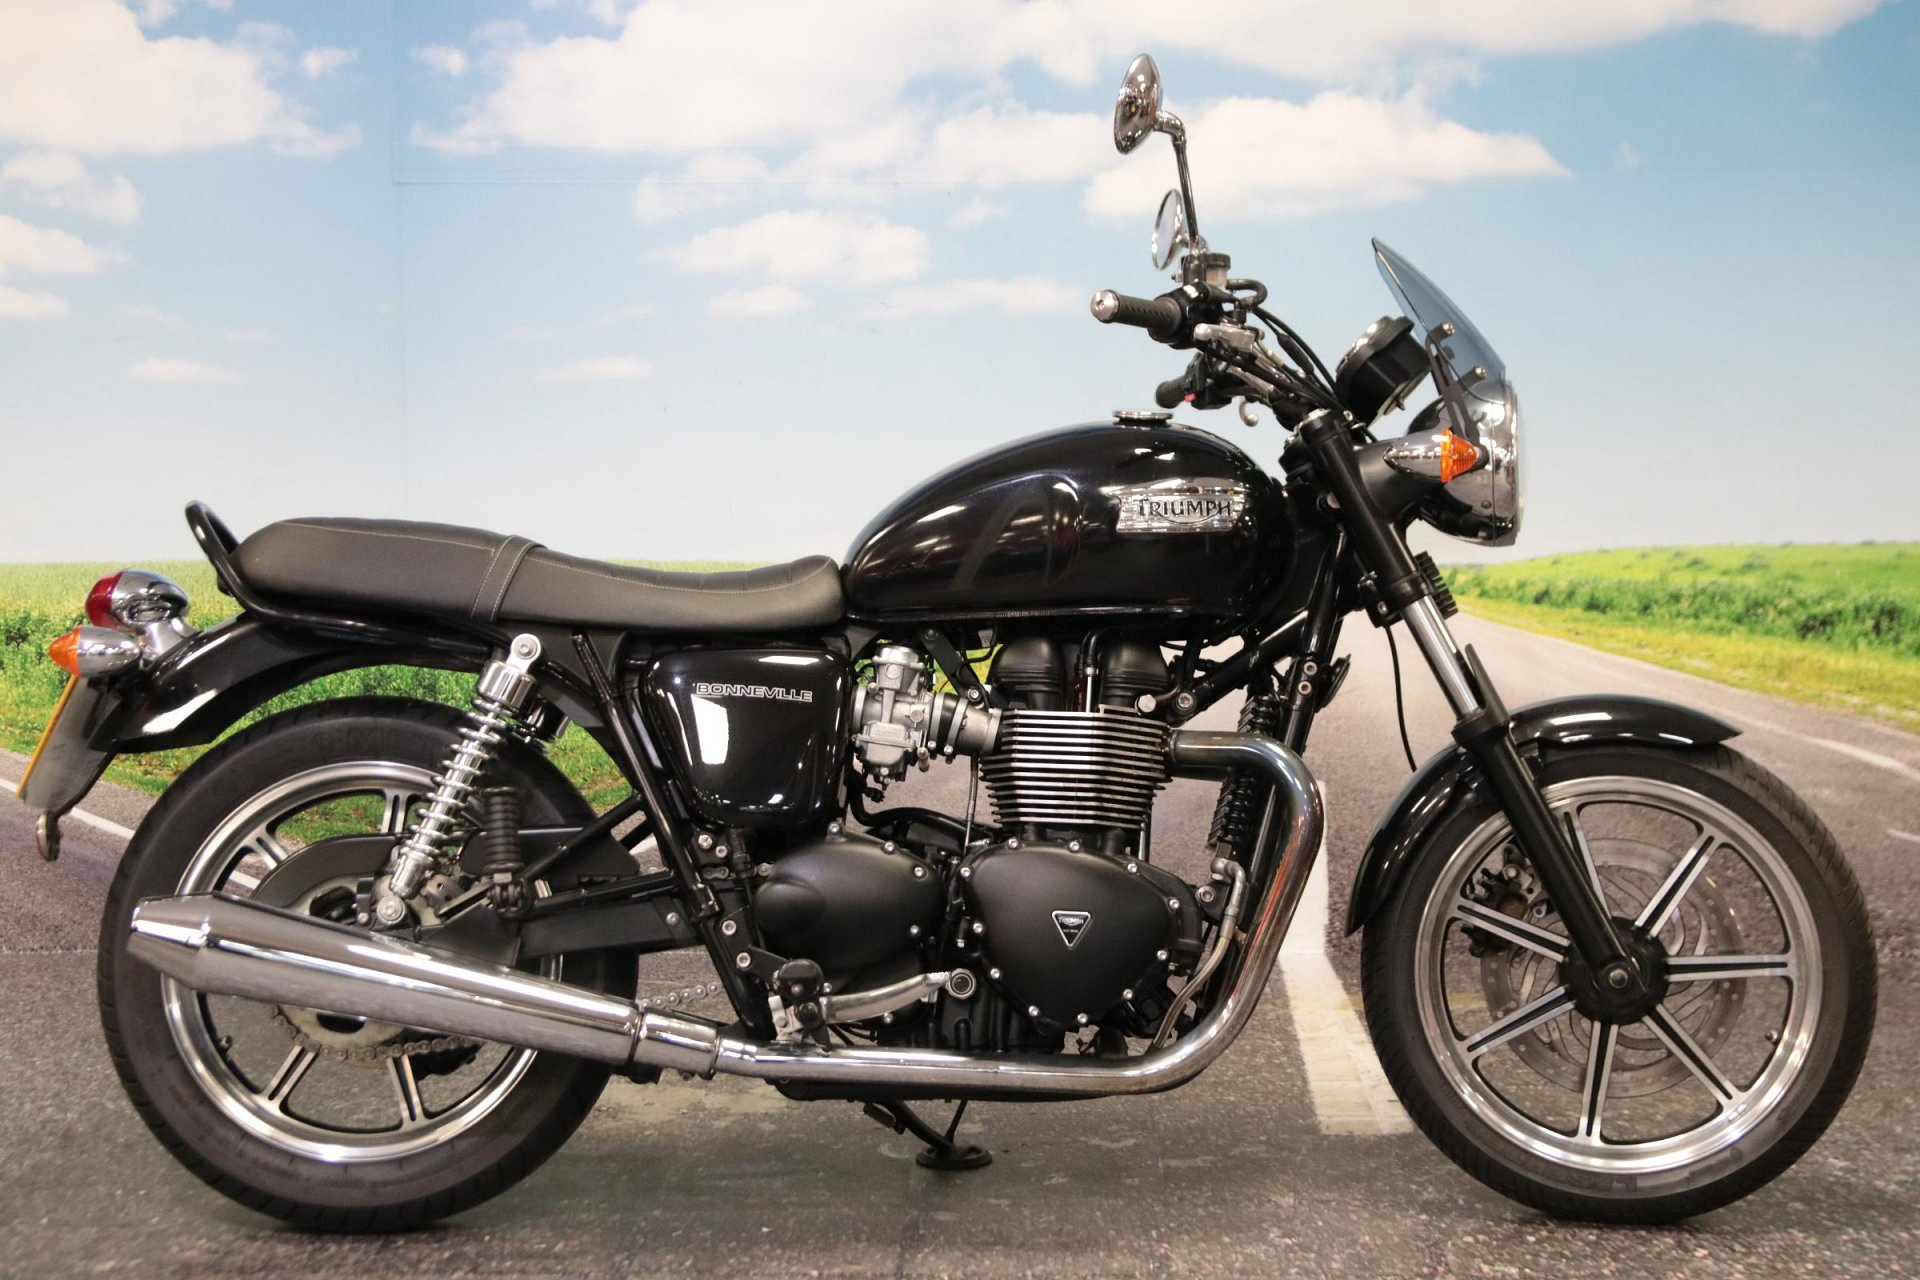 2013 Triumph Bonneville 865 for sale in South Wales